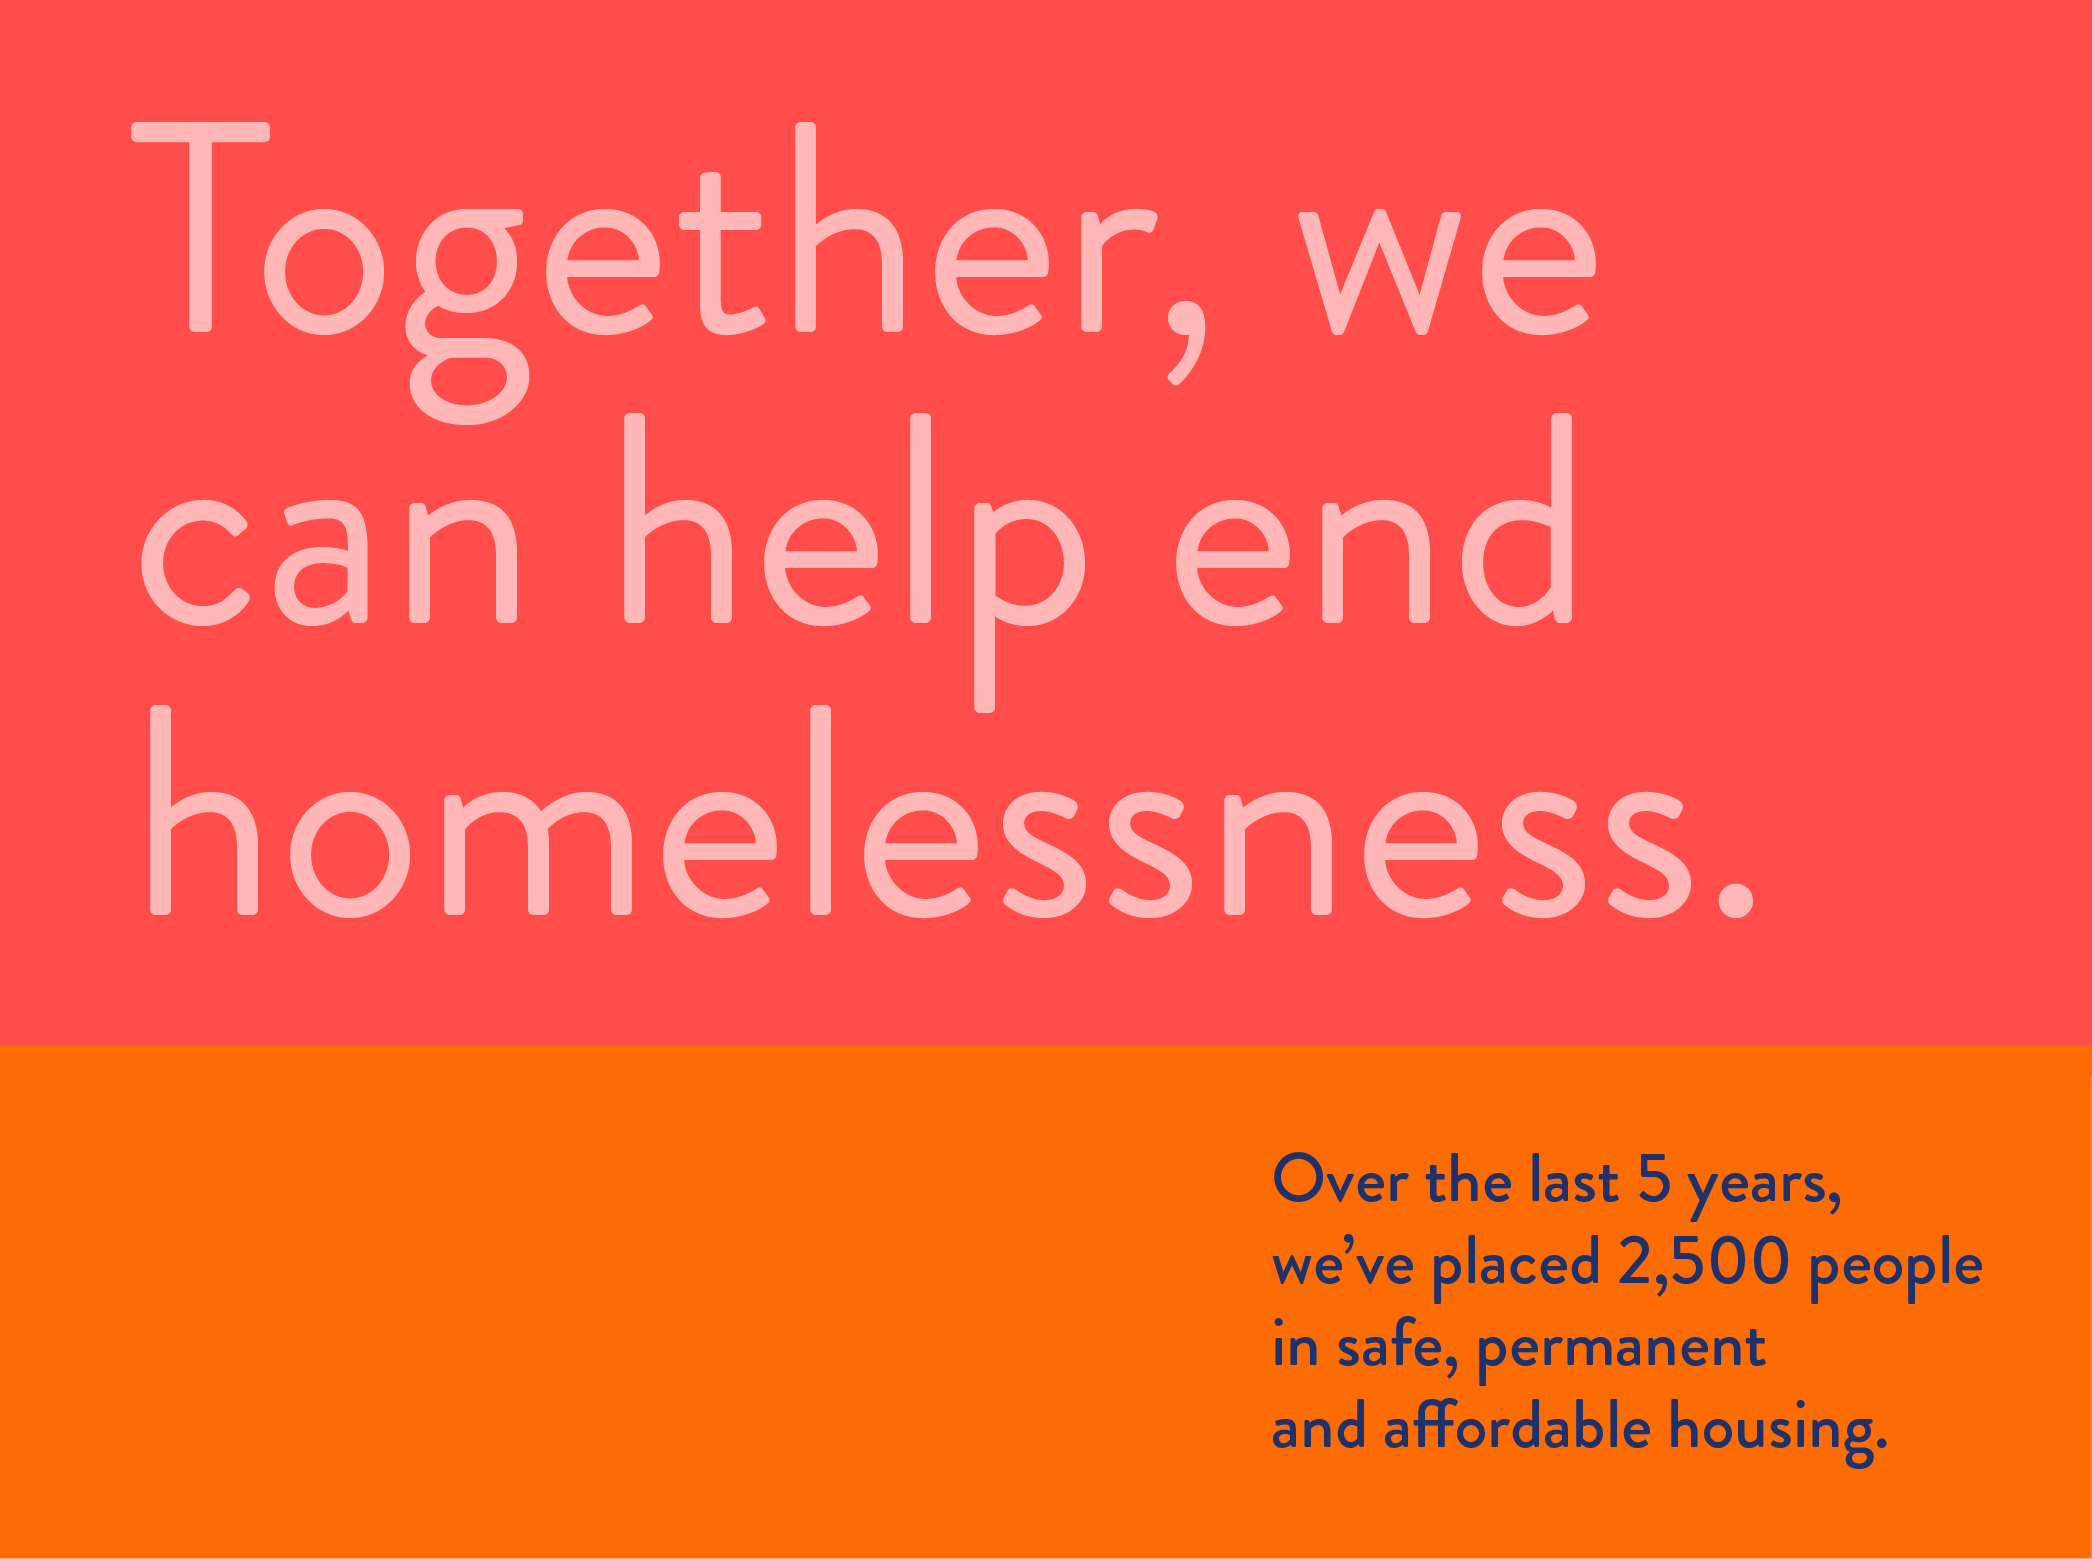 By making a contribution today you'll be providing much needed, basic essentials for those moving into their permanent, safe new home. Every dollar brings us one step closer to providing a better quality of life for all.